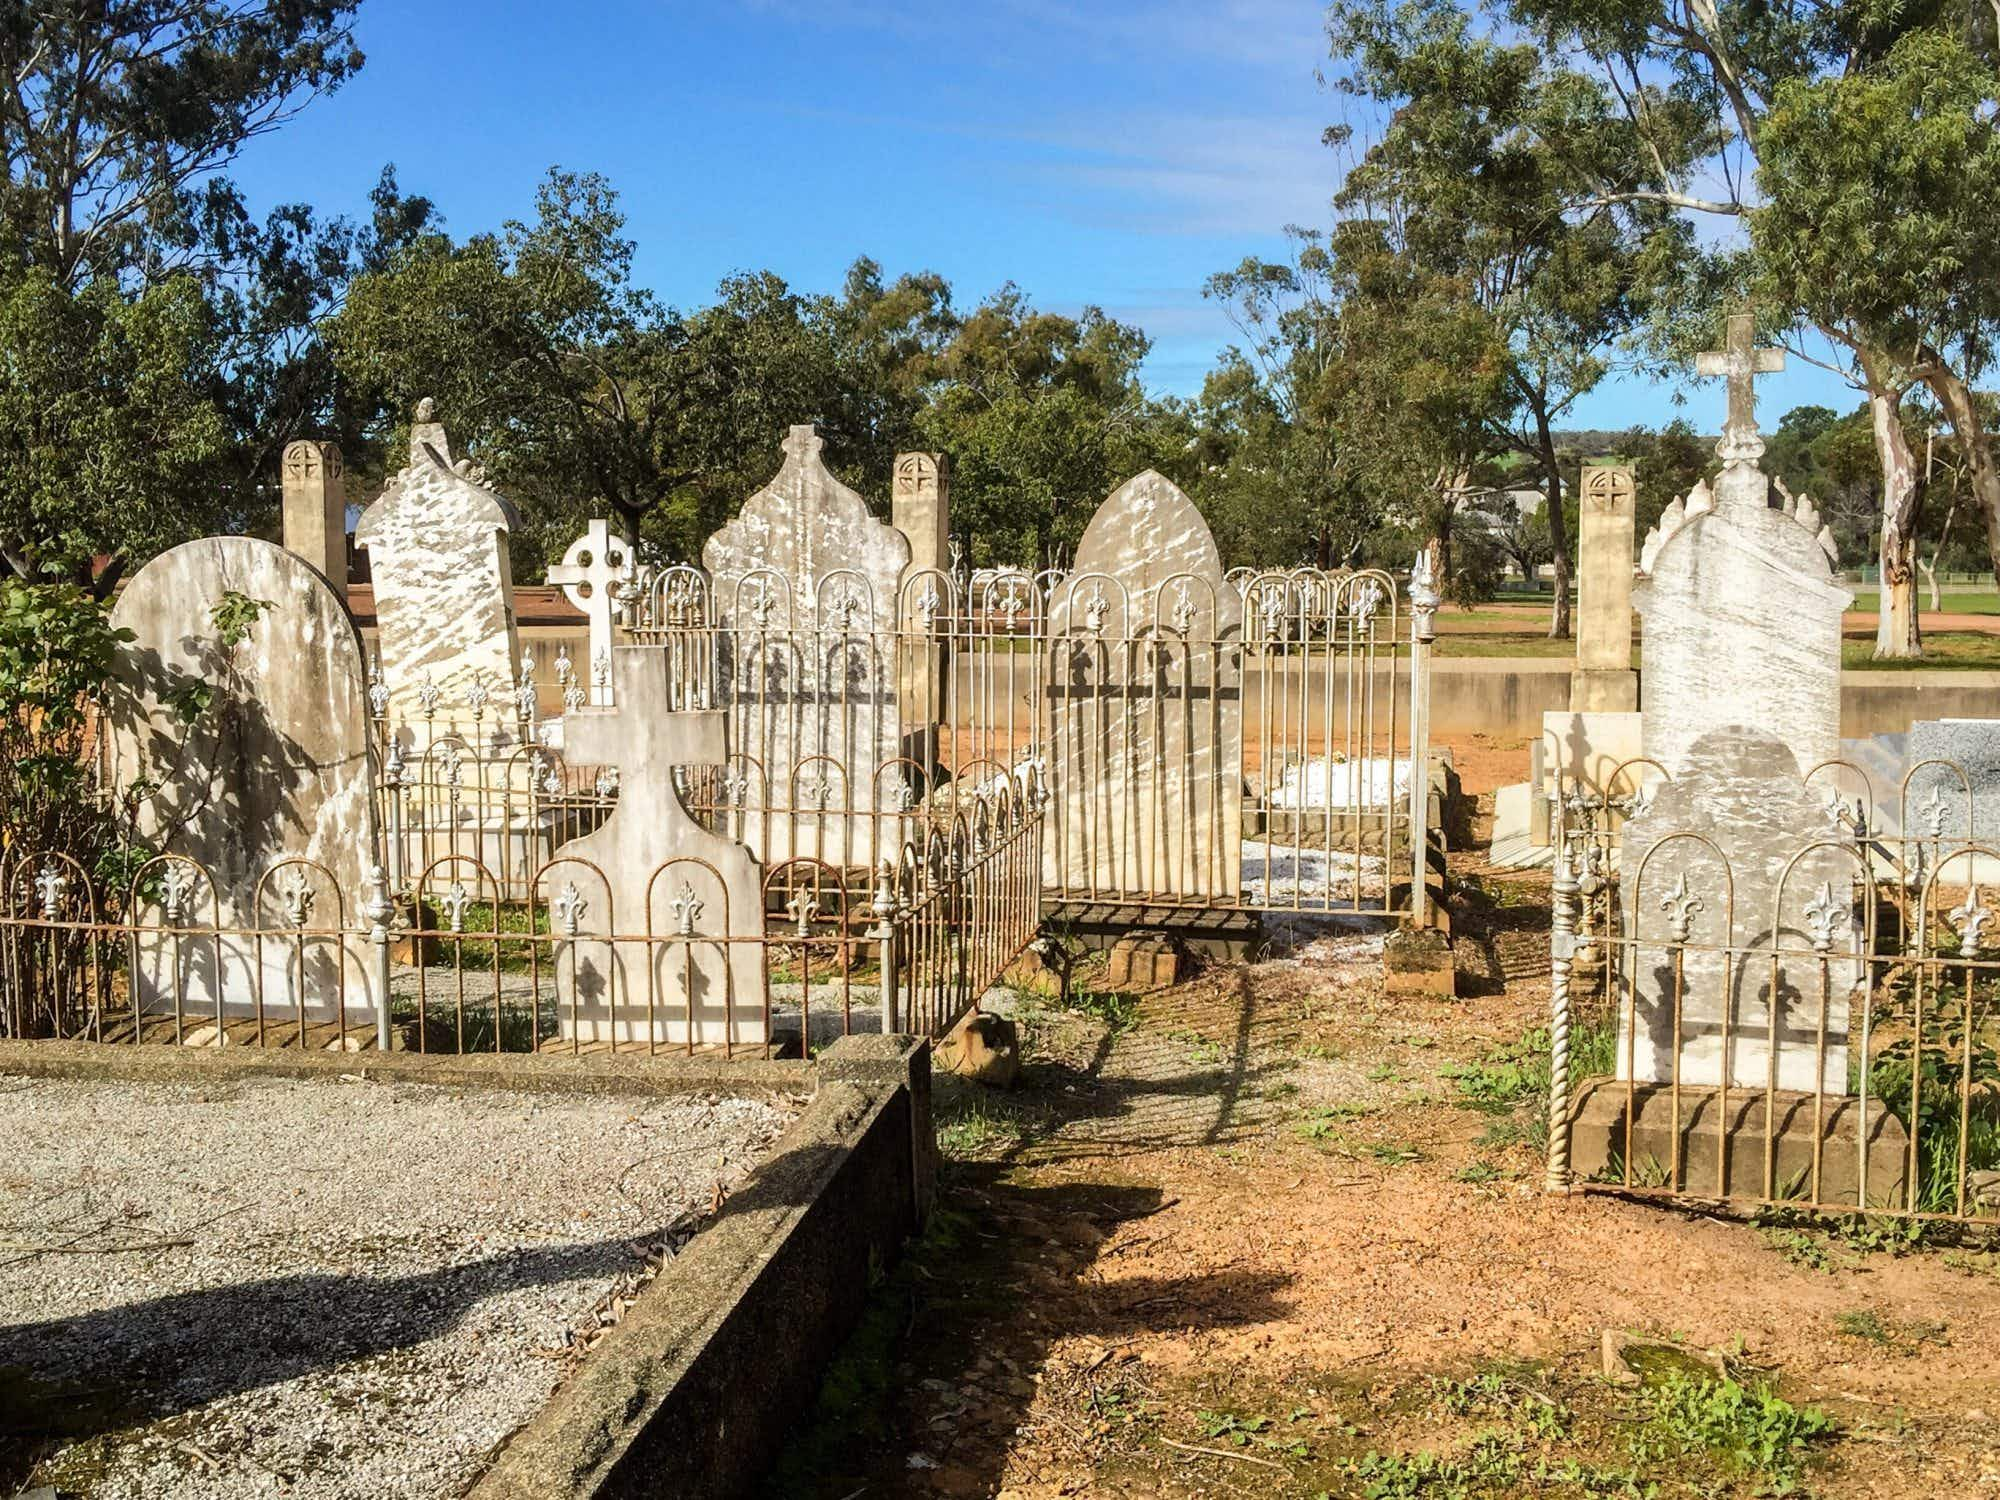 Why Australia is encouraging tourists to visit cemeteries